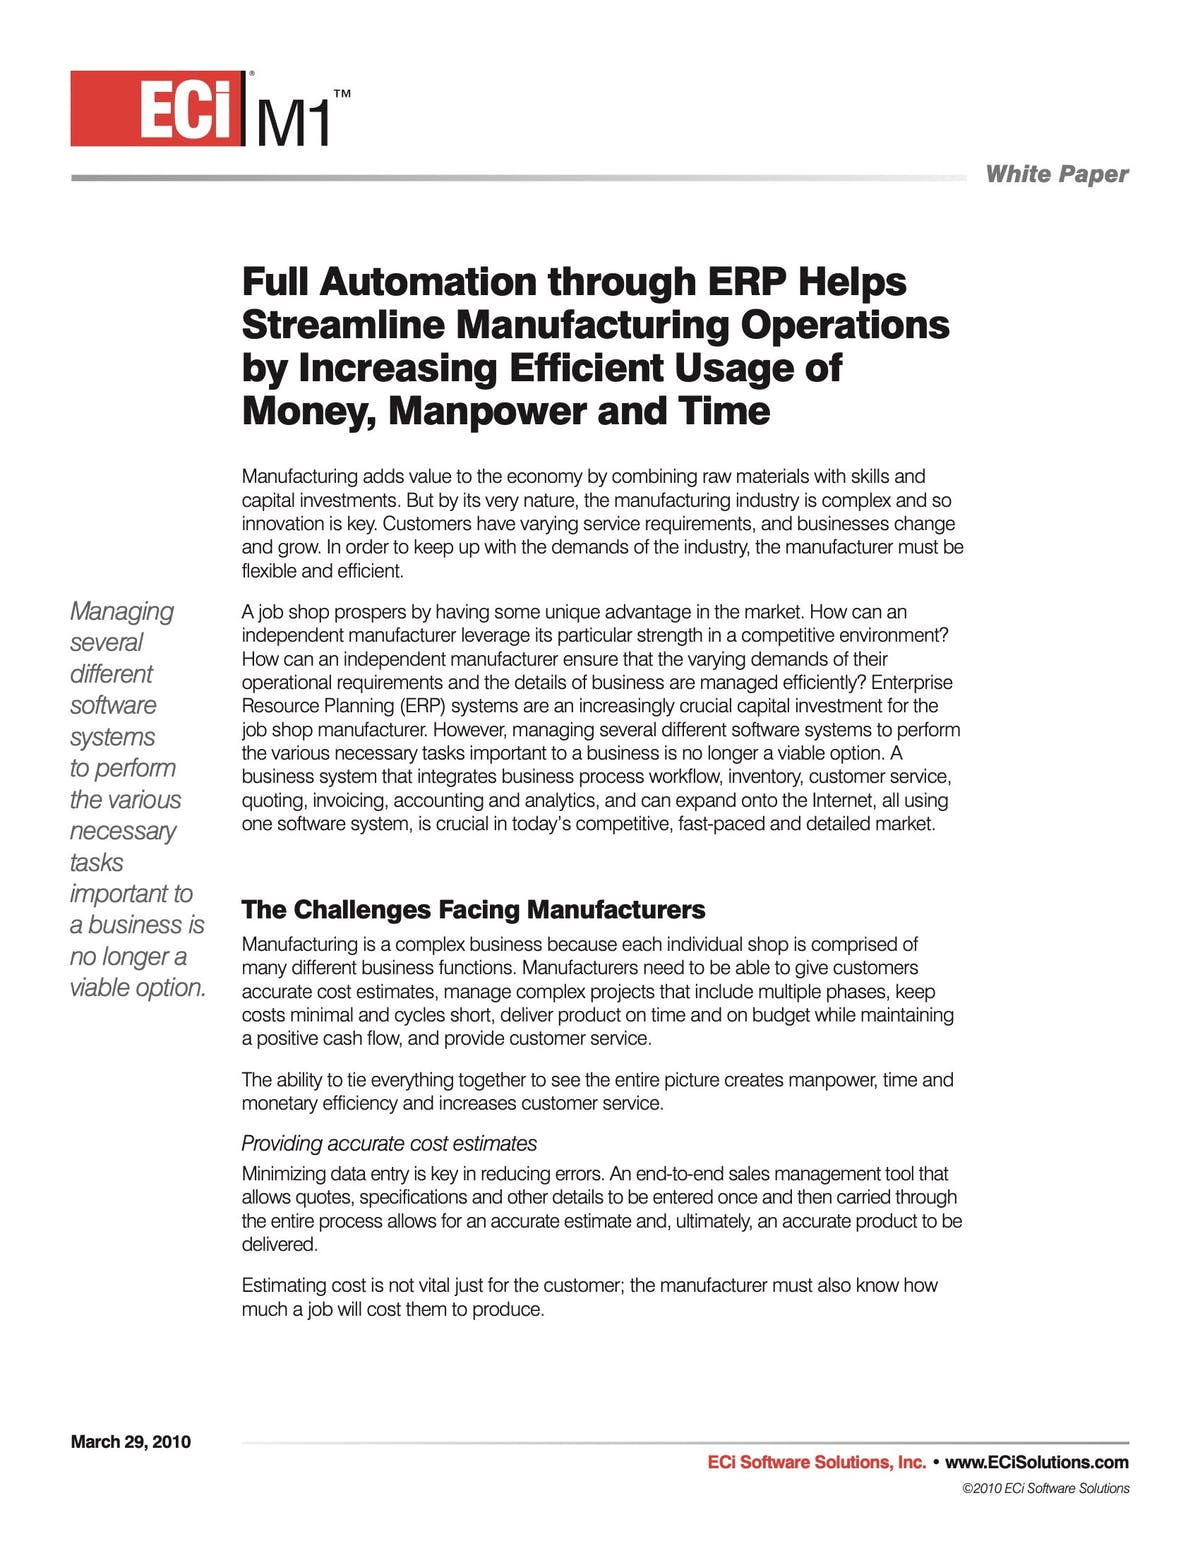 ECi M1 White Paper - Full Automation Through ERP Helps Streamline Manufacturing Operations